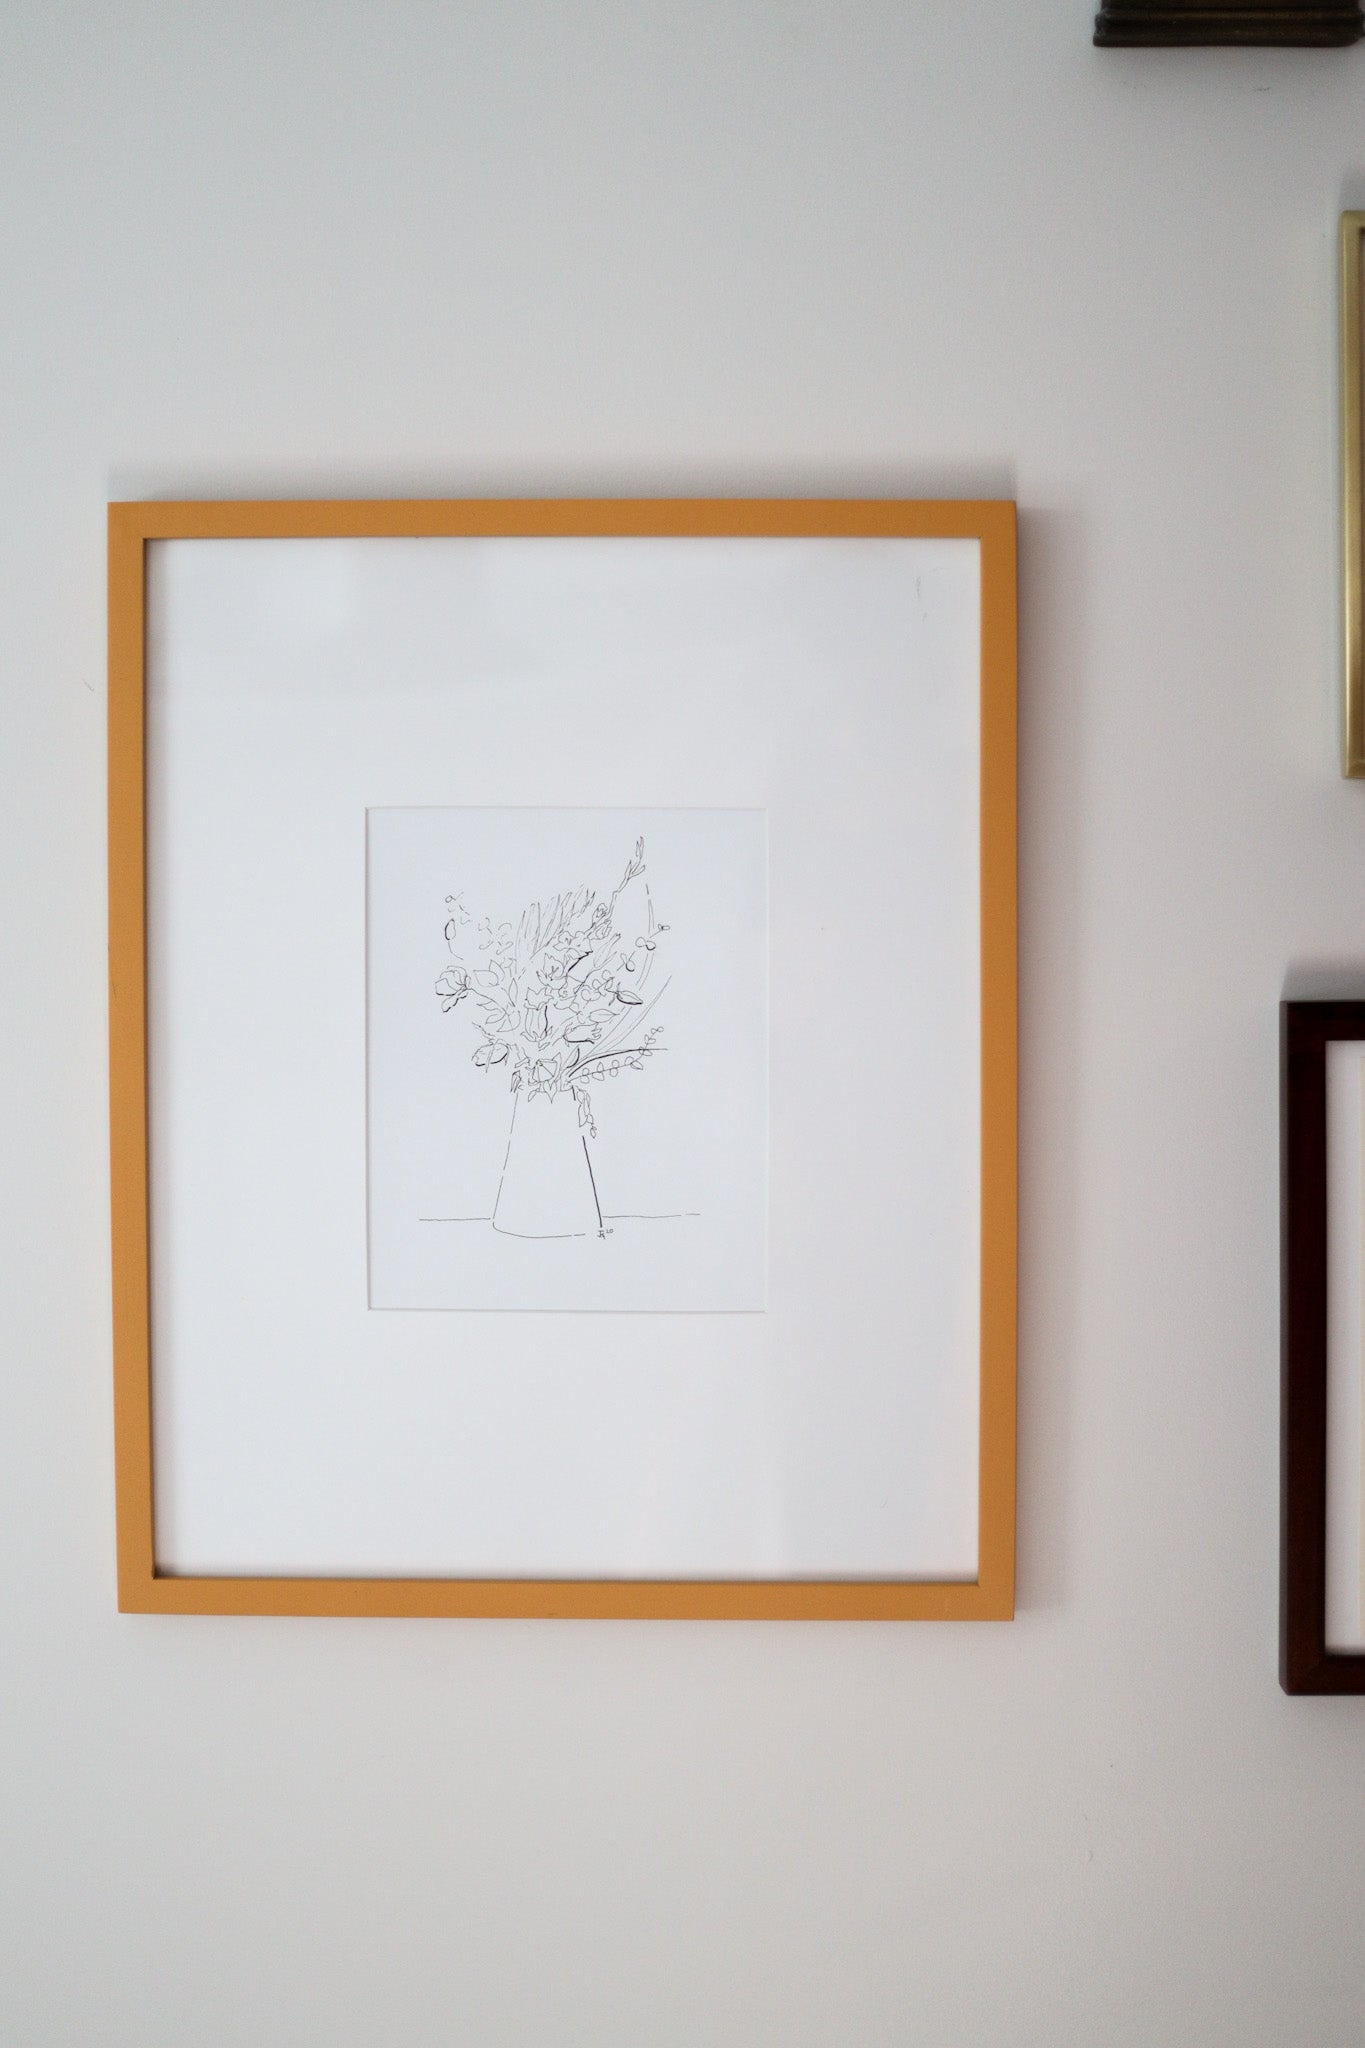 Orange framed floral sketch sitting in low light